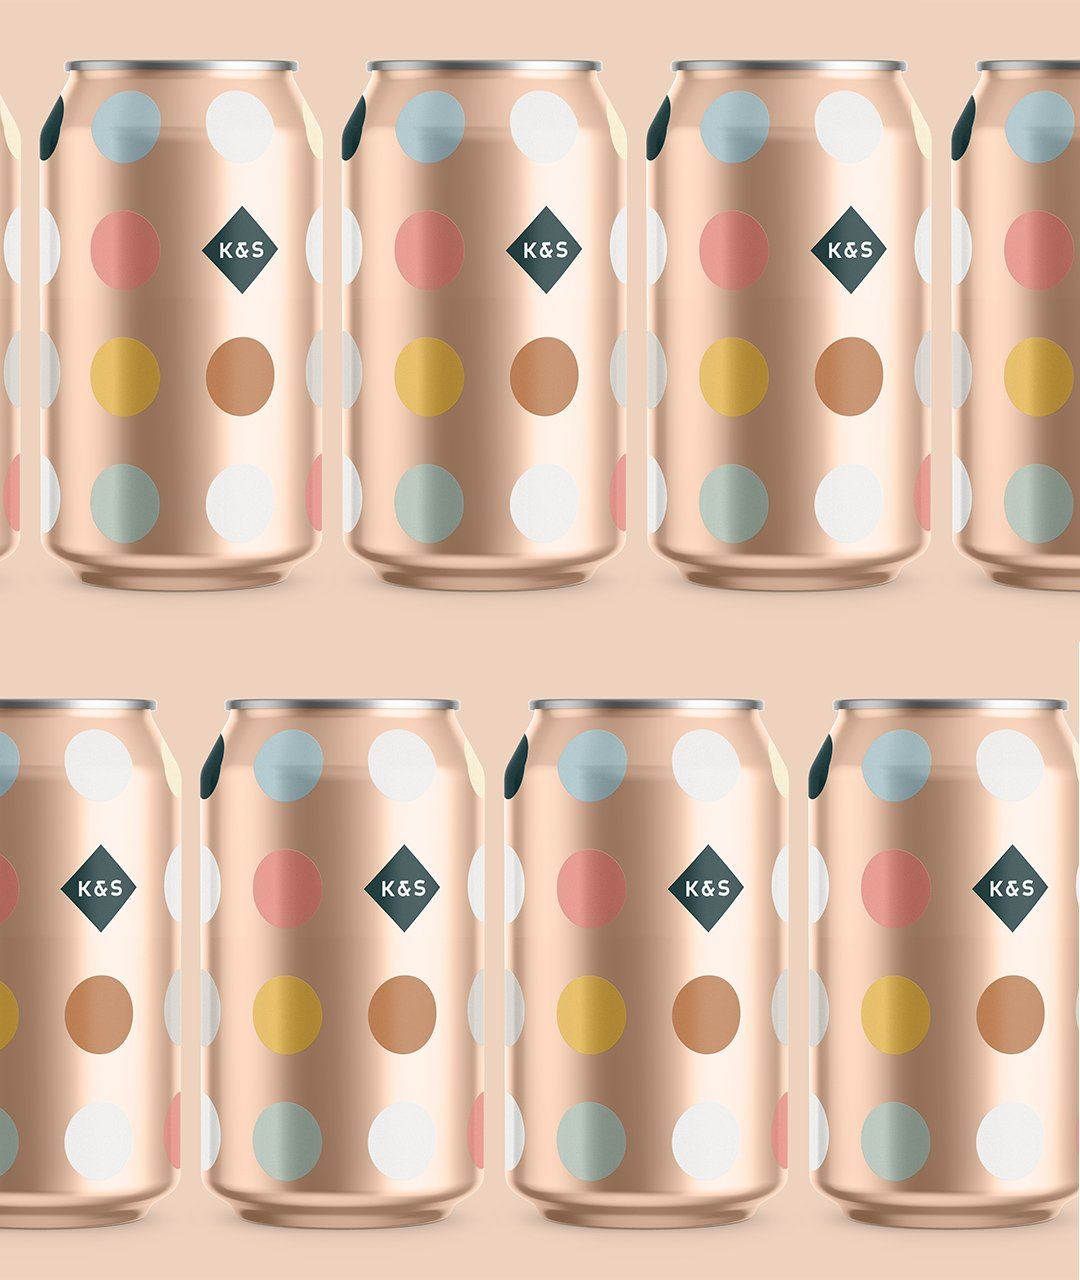 Kingdom and sparrow branded 300ml cans showcasing colour palette